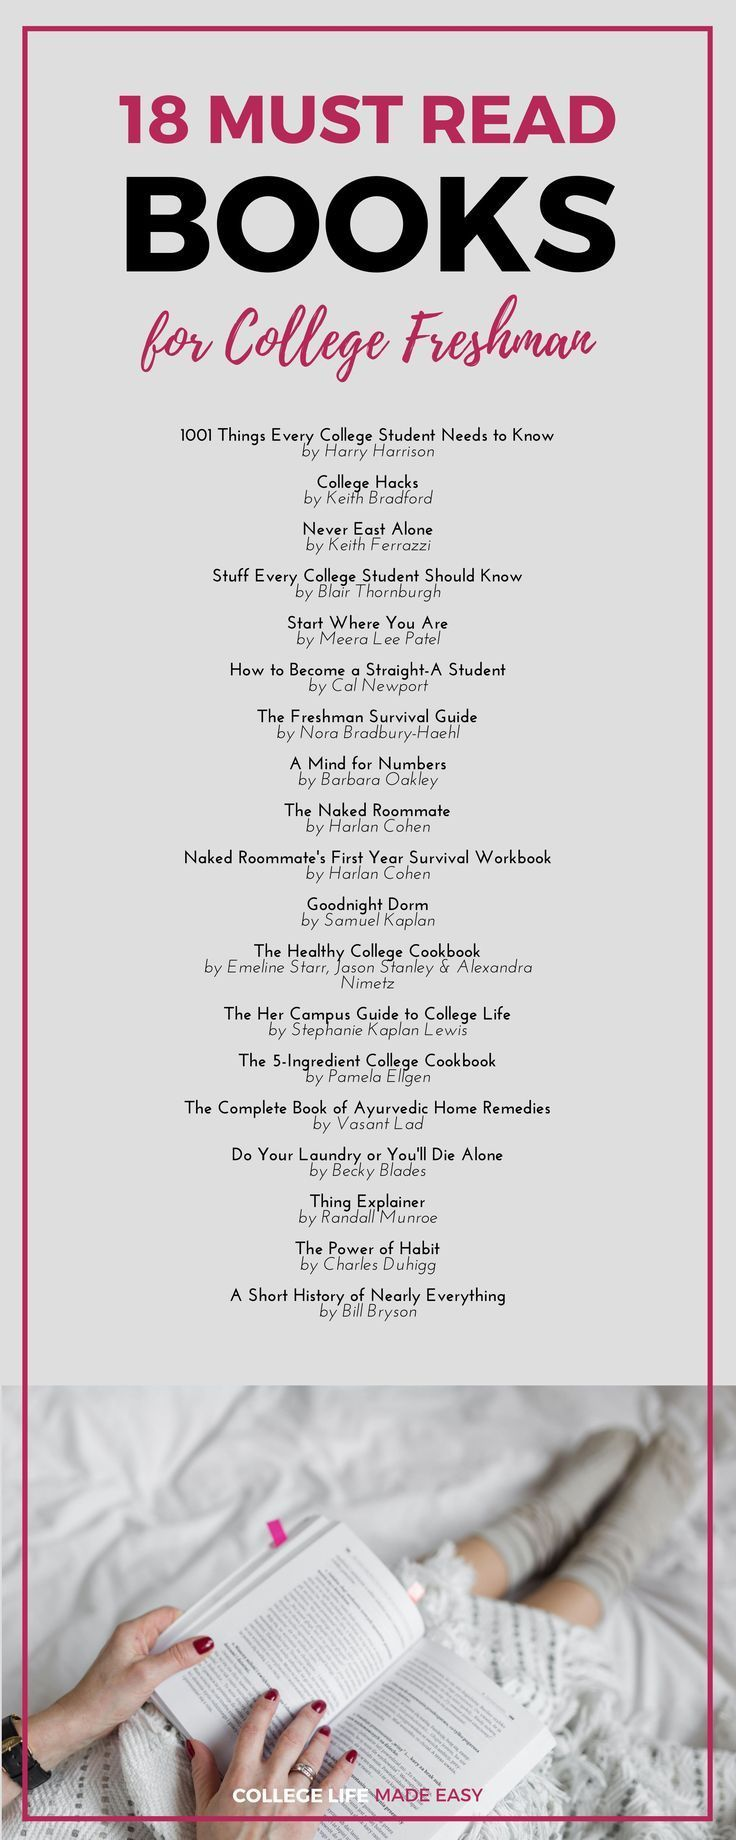 18 Books Every College Freshman Should Read | must Read Books for College Women Girls | College Reading Bucket List | via @esycollegelife